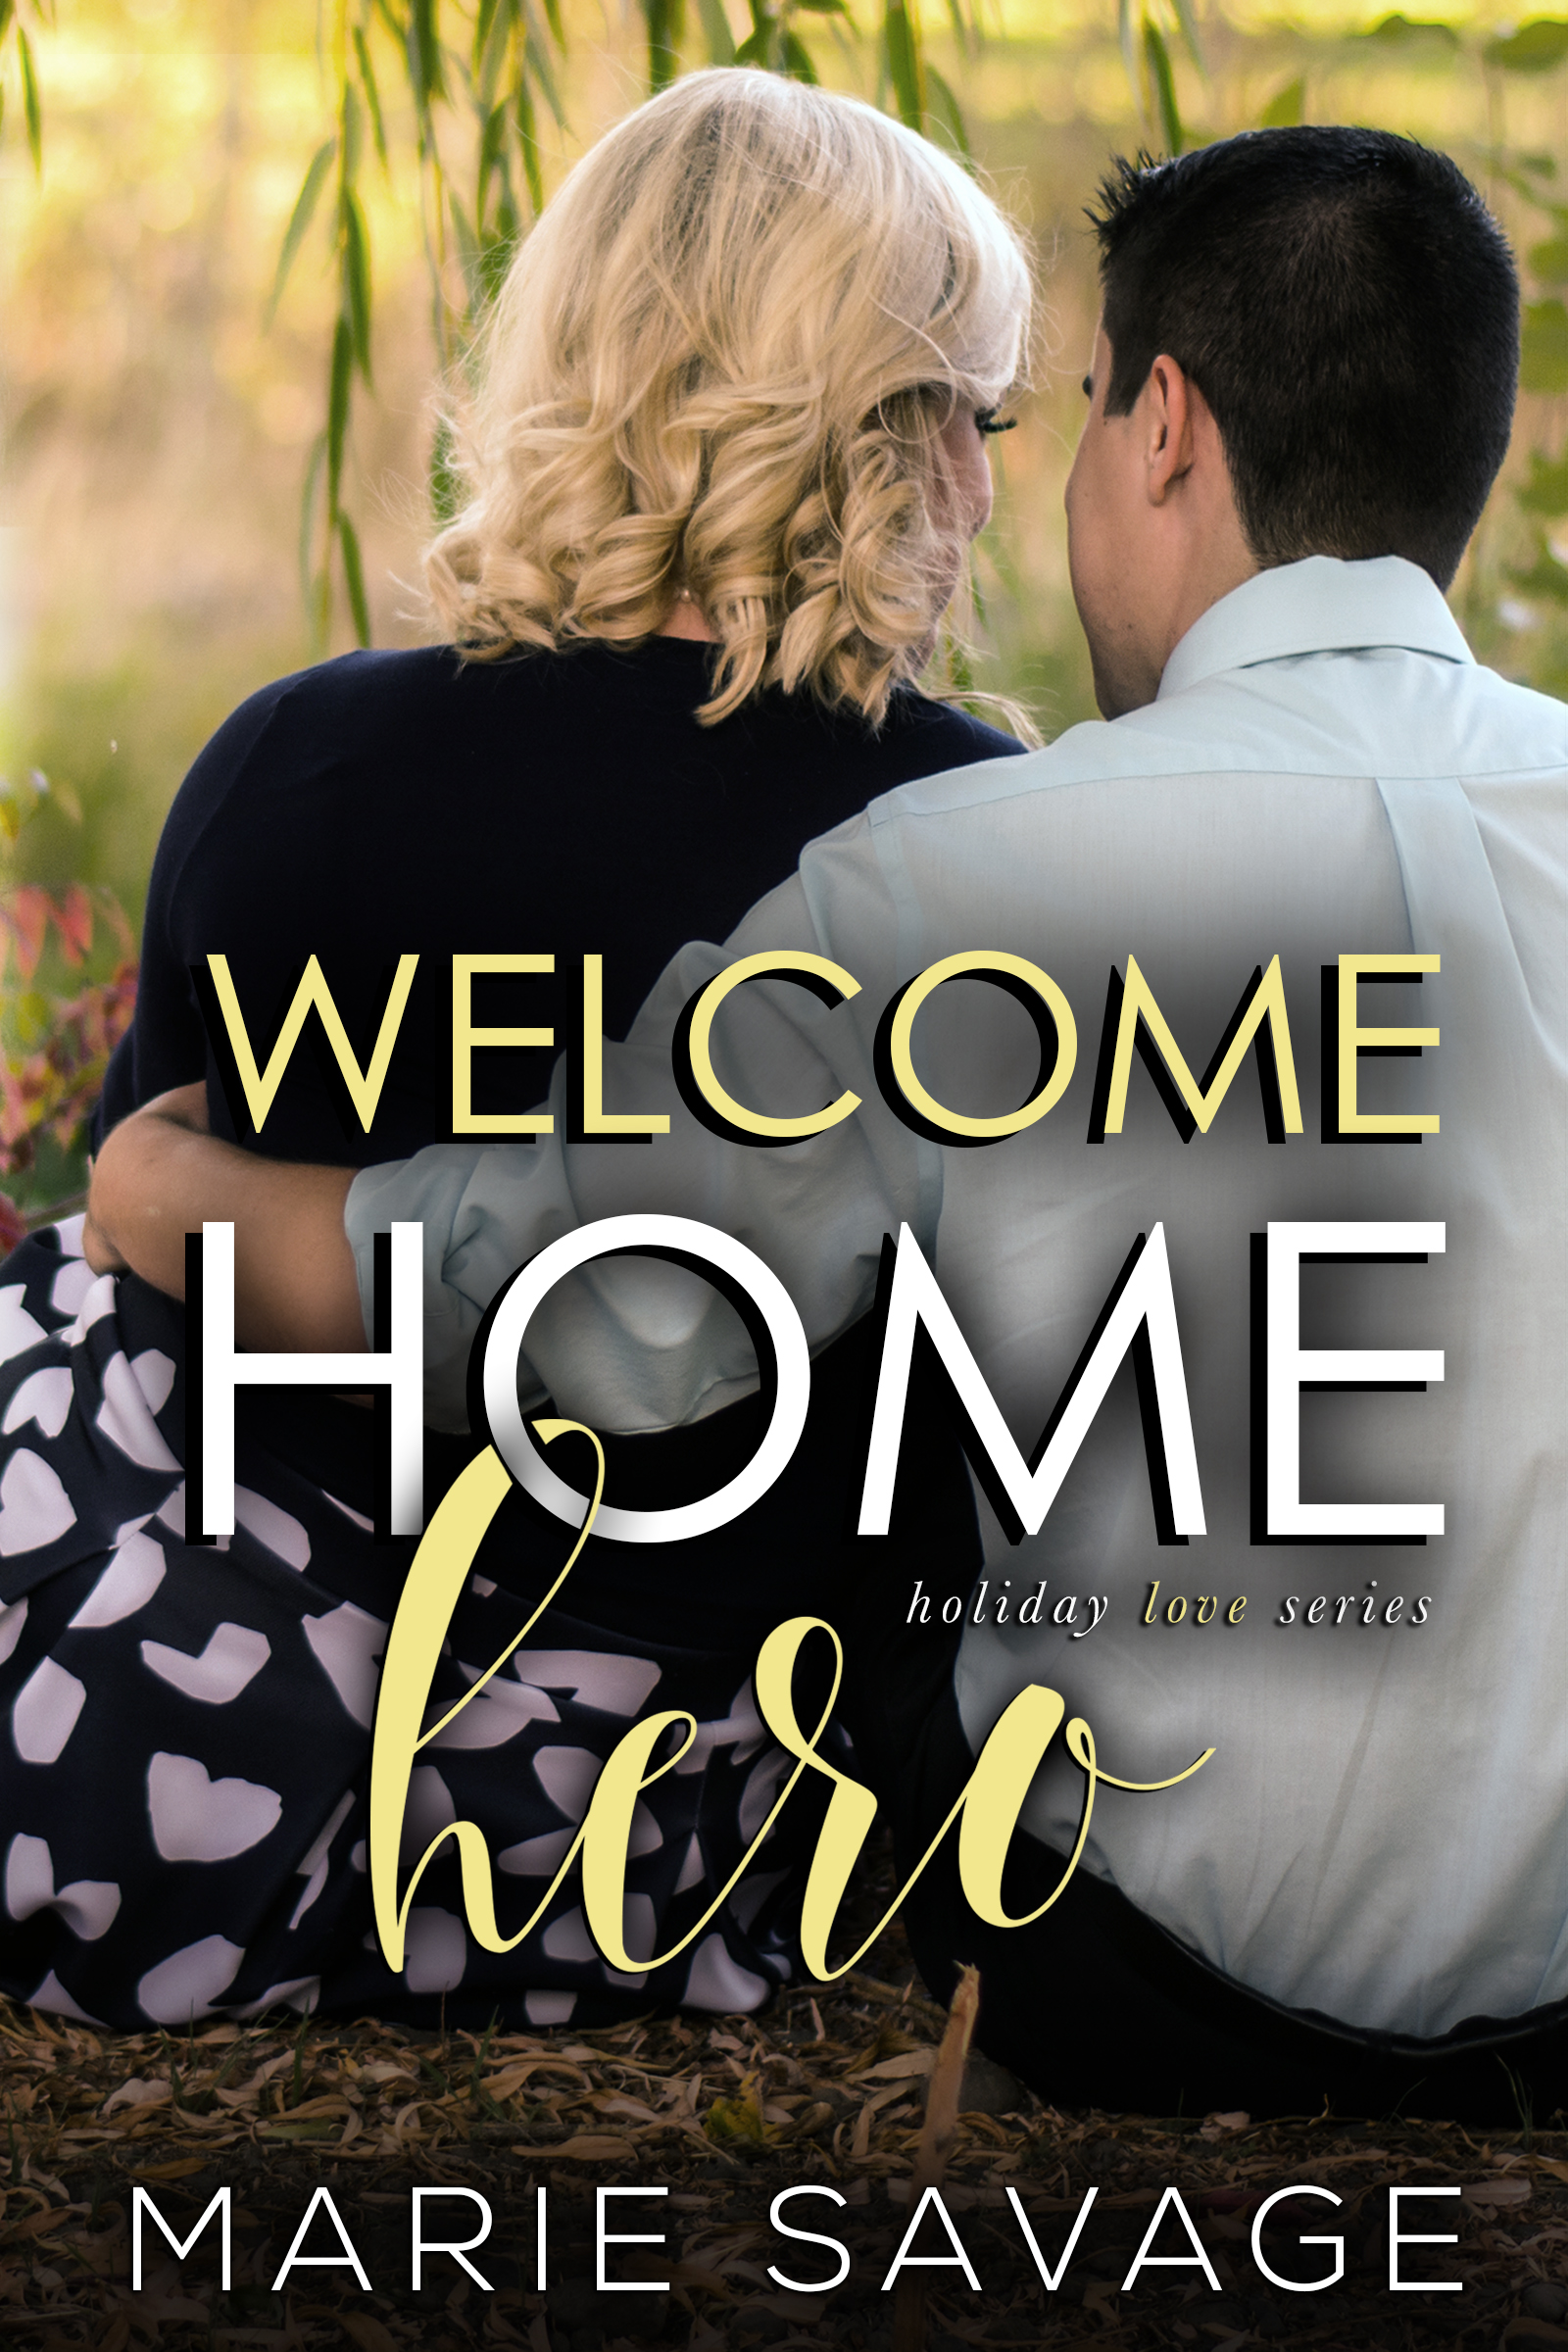 Welcome Home Hero Marie Savage E-Cover